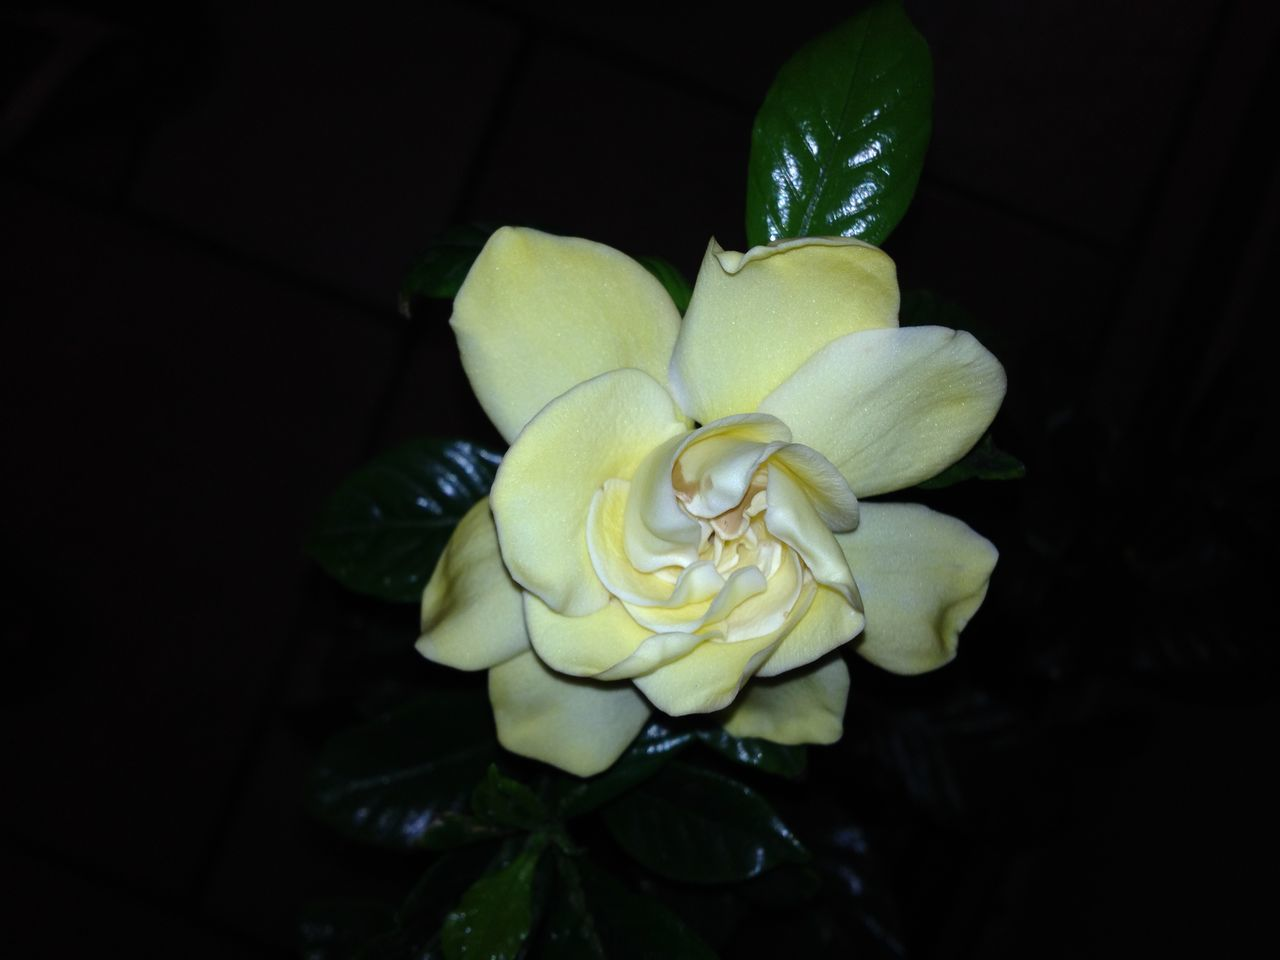 Gardenia Amarillo Flores Flower Gardenia Gardenia Flower Nature Petal Plant First Eyeem Photo